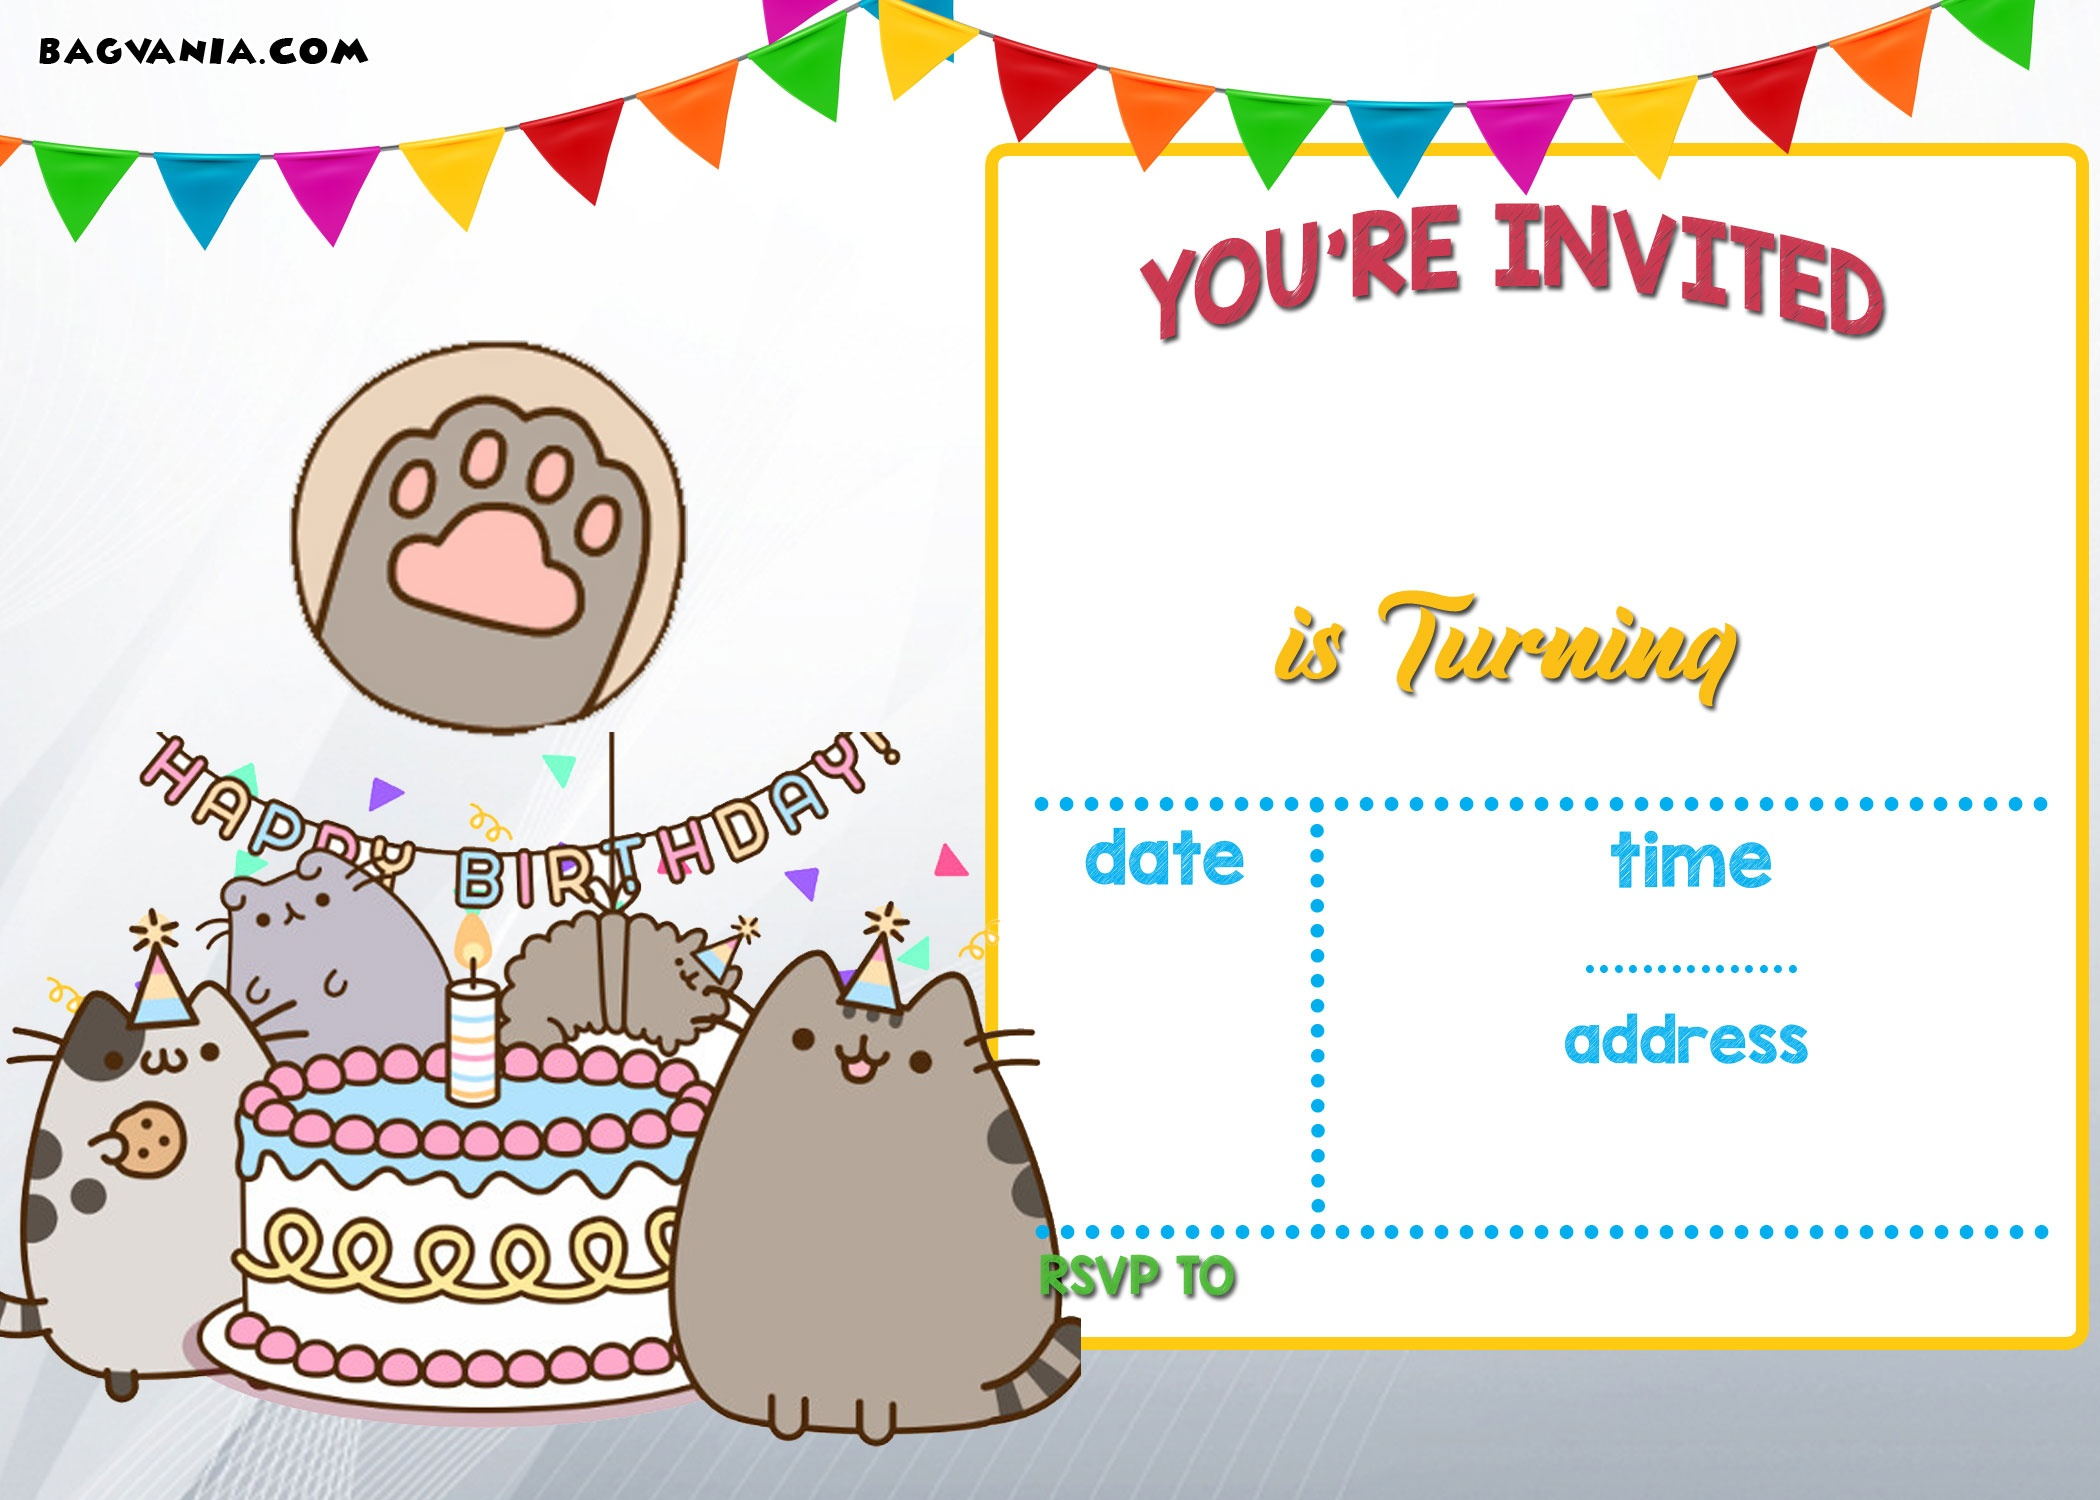 Printable Birthday Party Invitations For Free - Party Invitation - Free Printable Birthday Invitations For Him